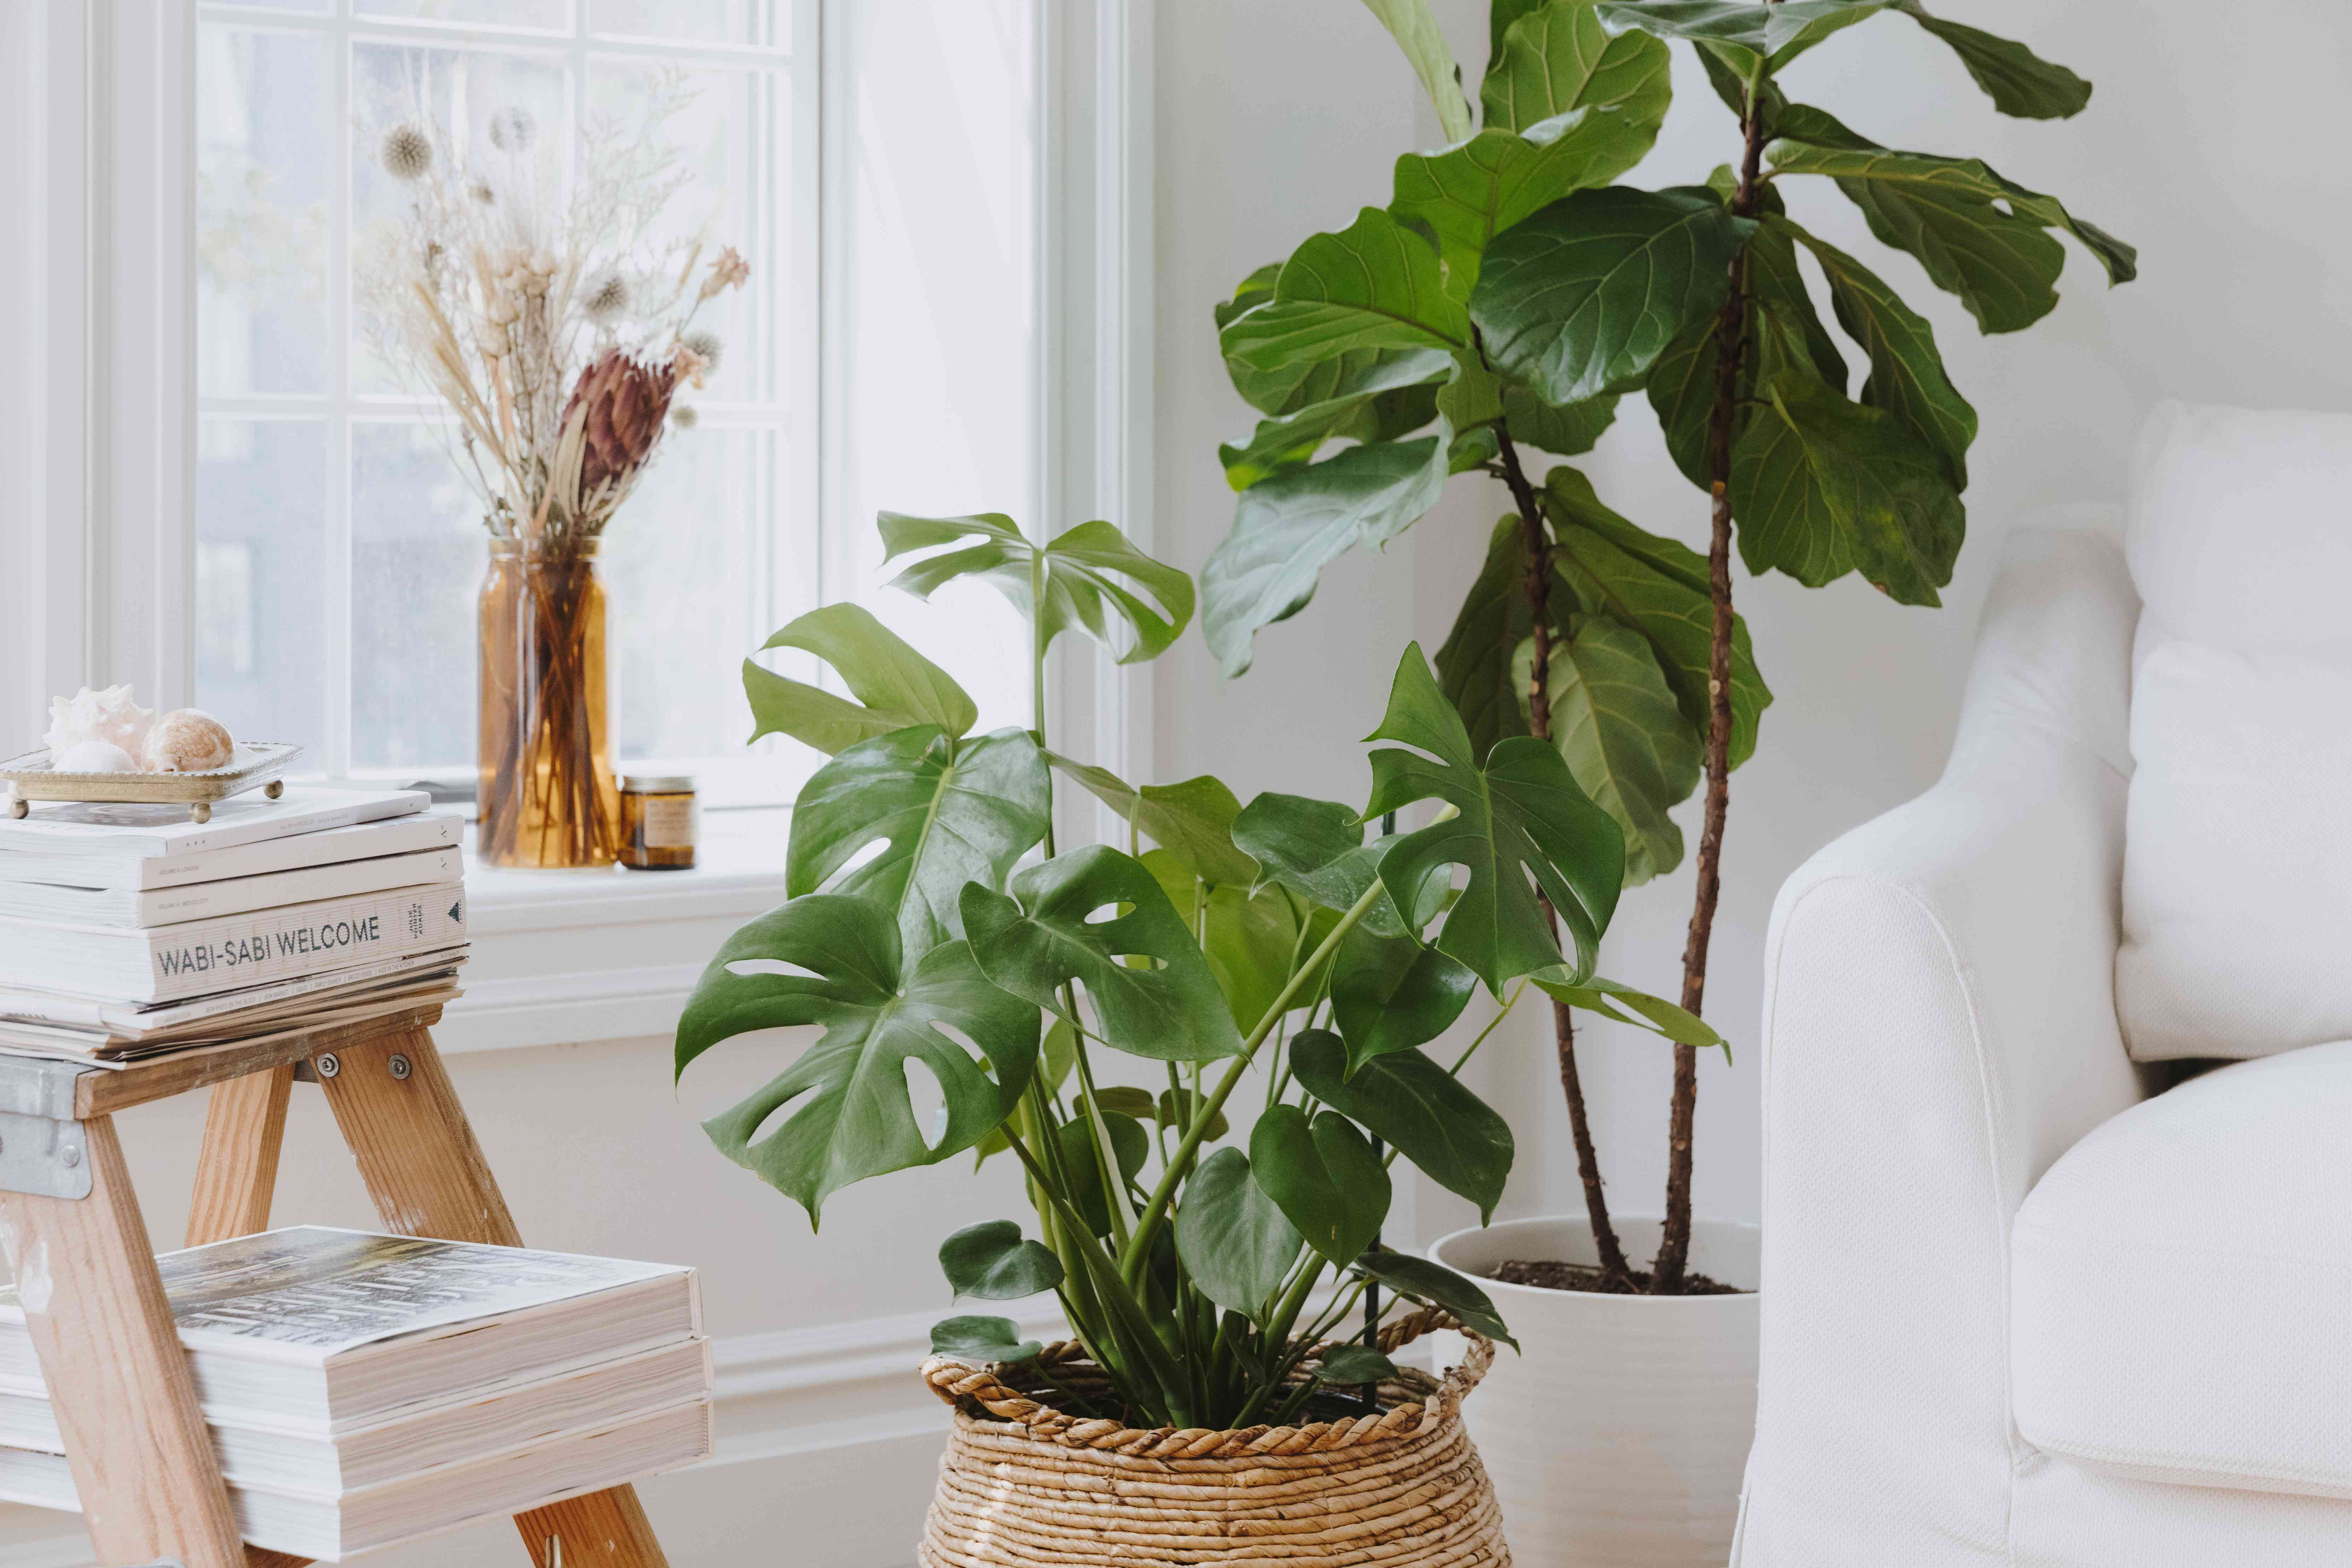 bringing greenery into a white room